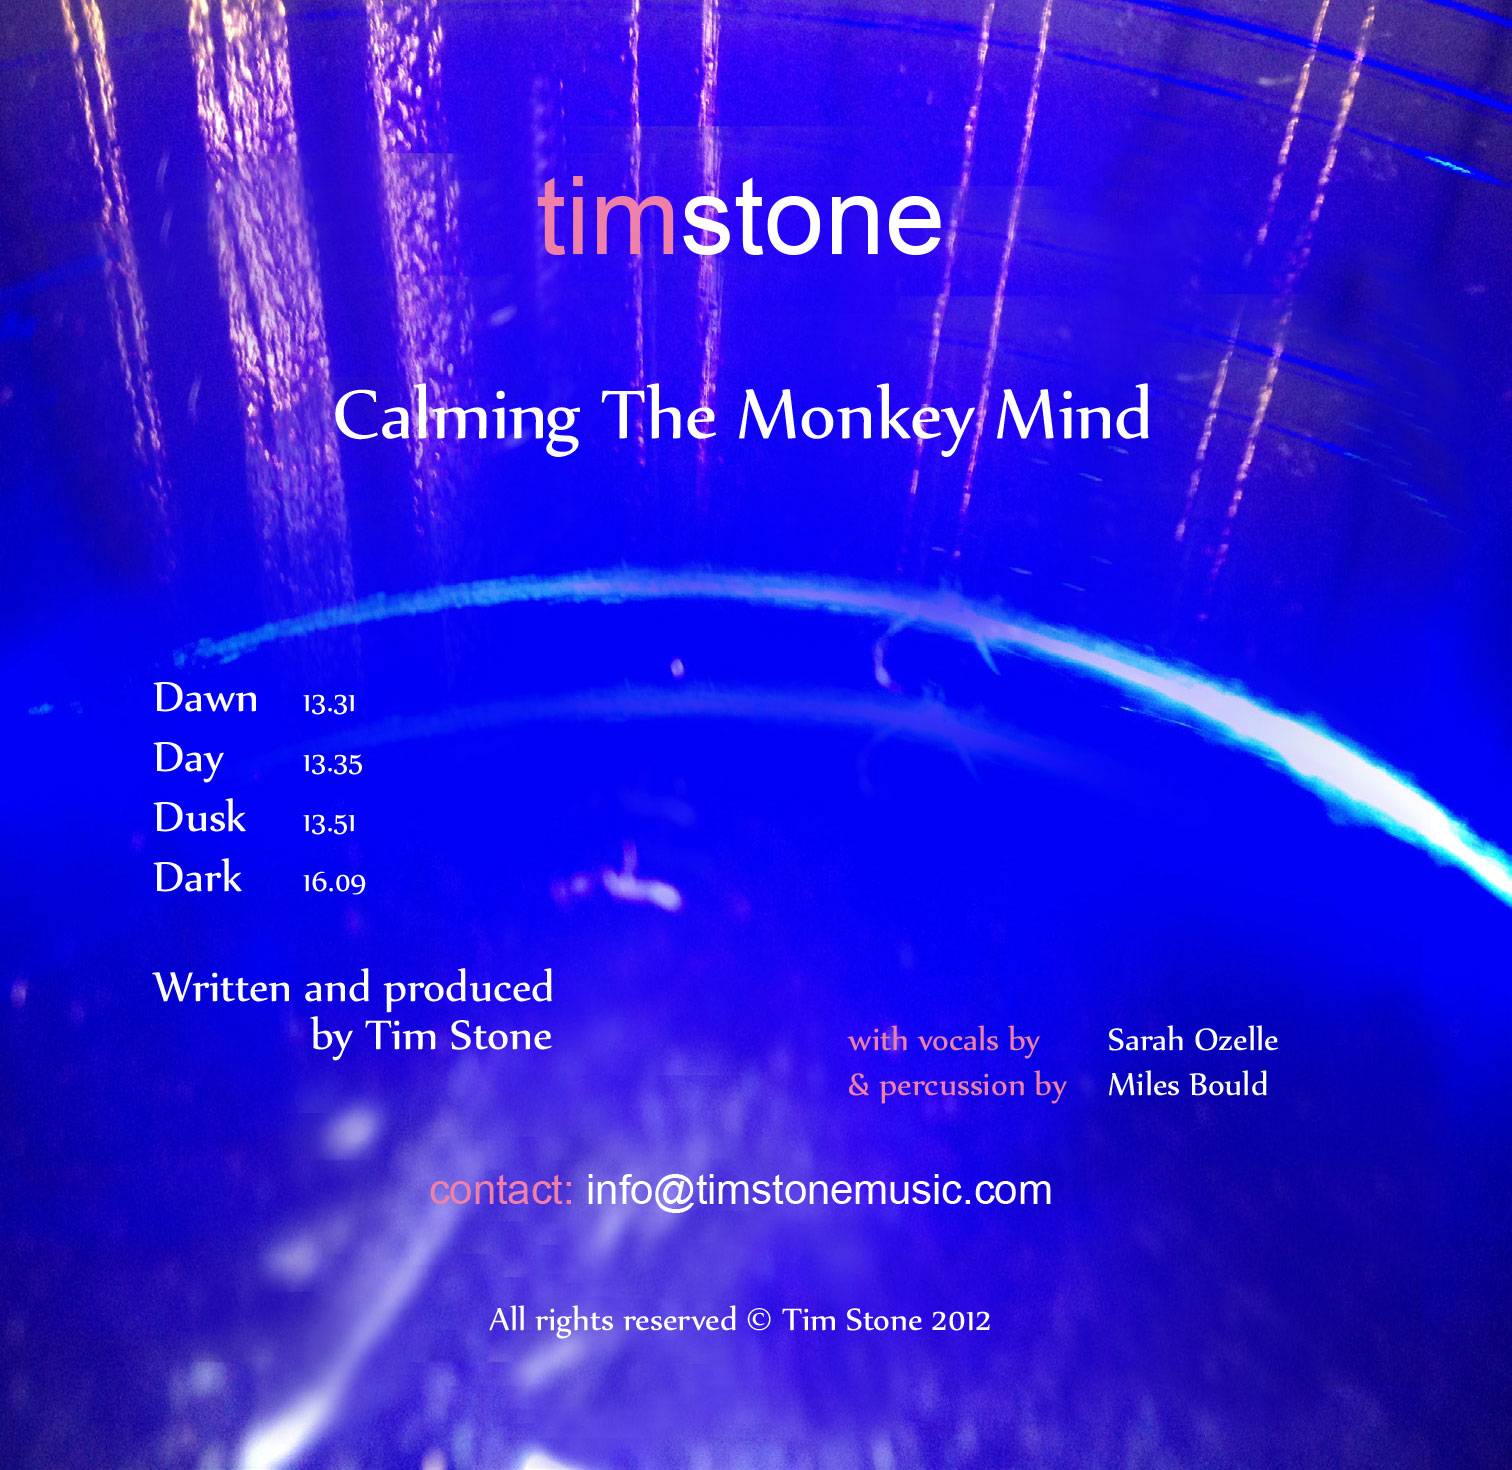 Calming the monkey mind cd cover by Tim Stone